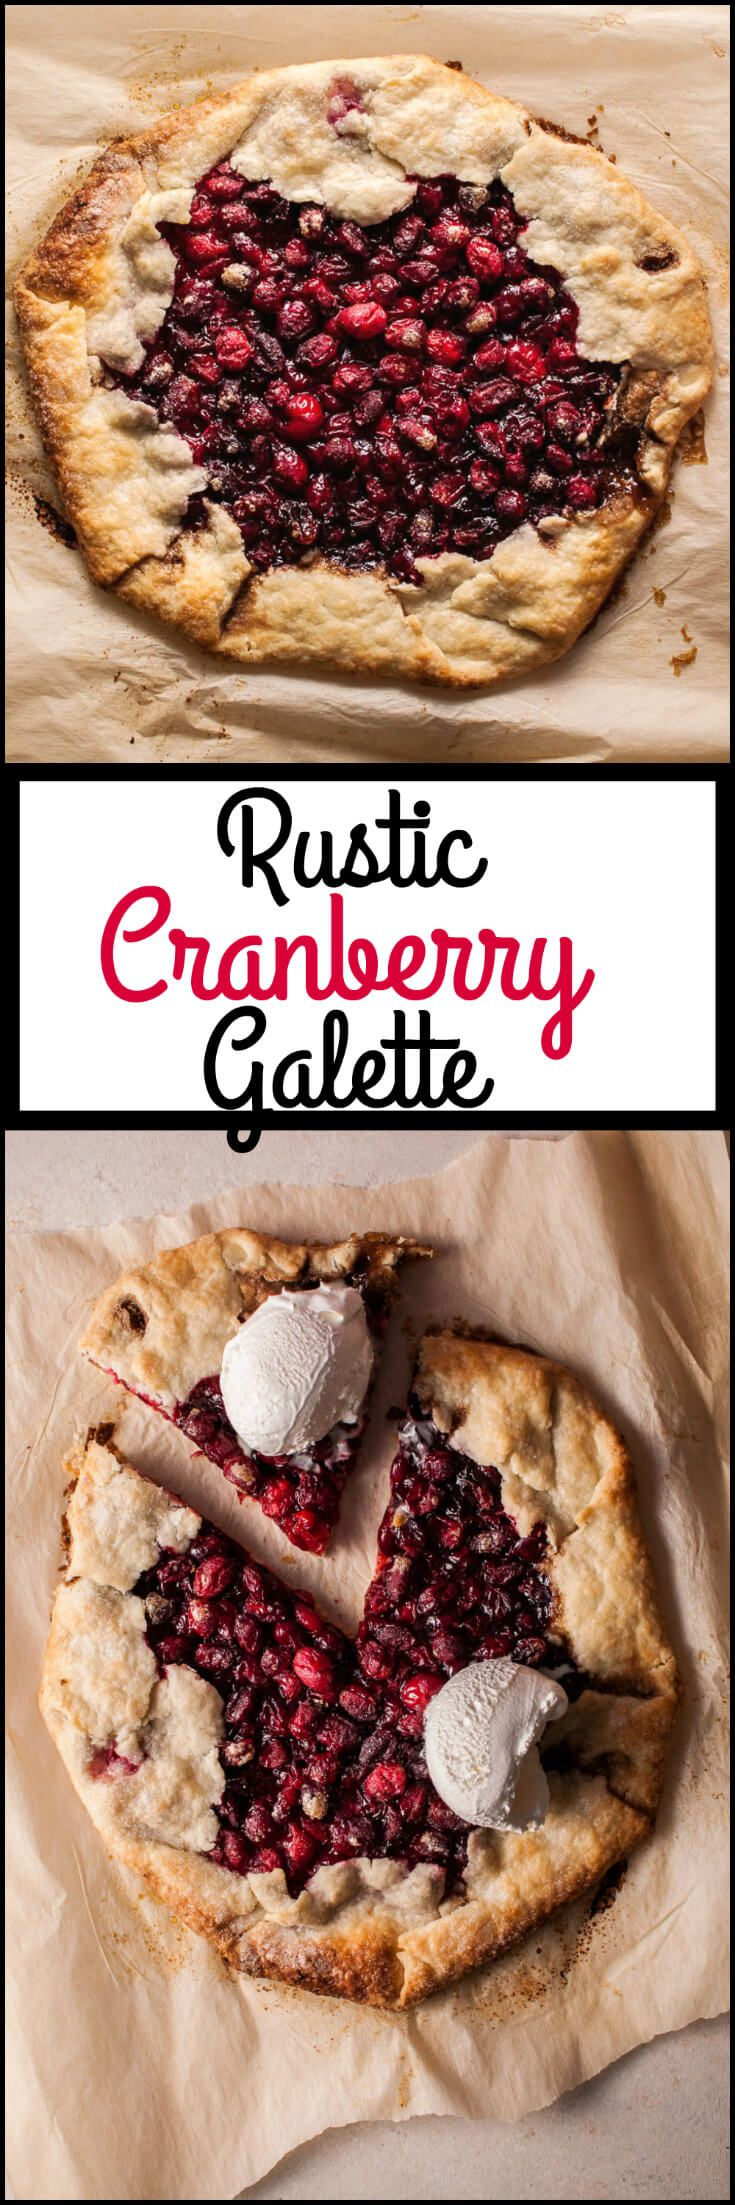 My rustic cranberry galette is a festive fall/winter/holiday dessert that will look beautiful on your table and delight your guests' tummies.